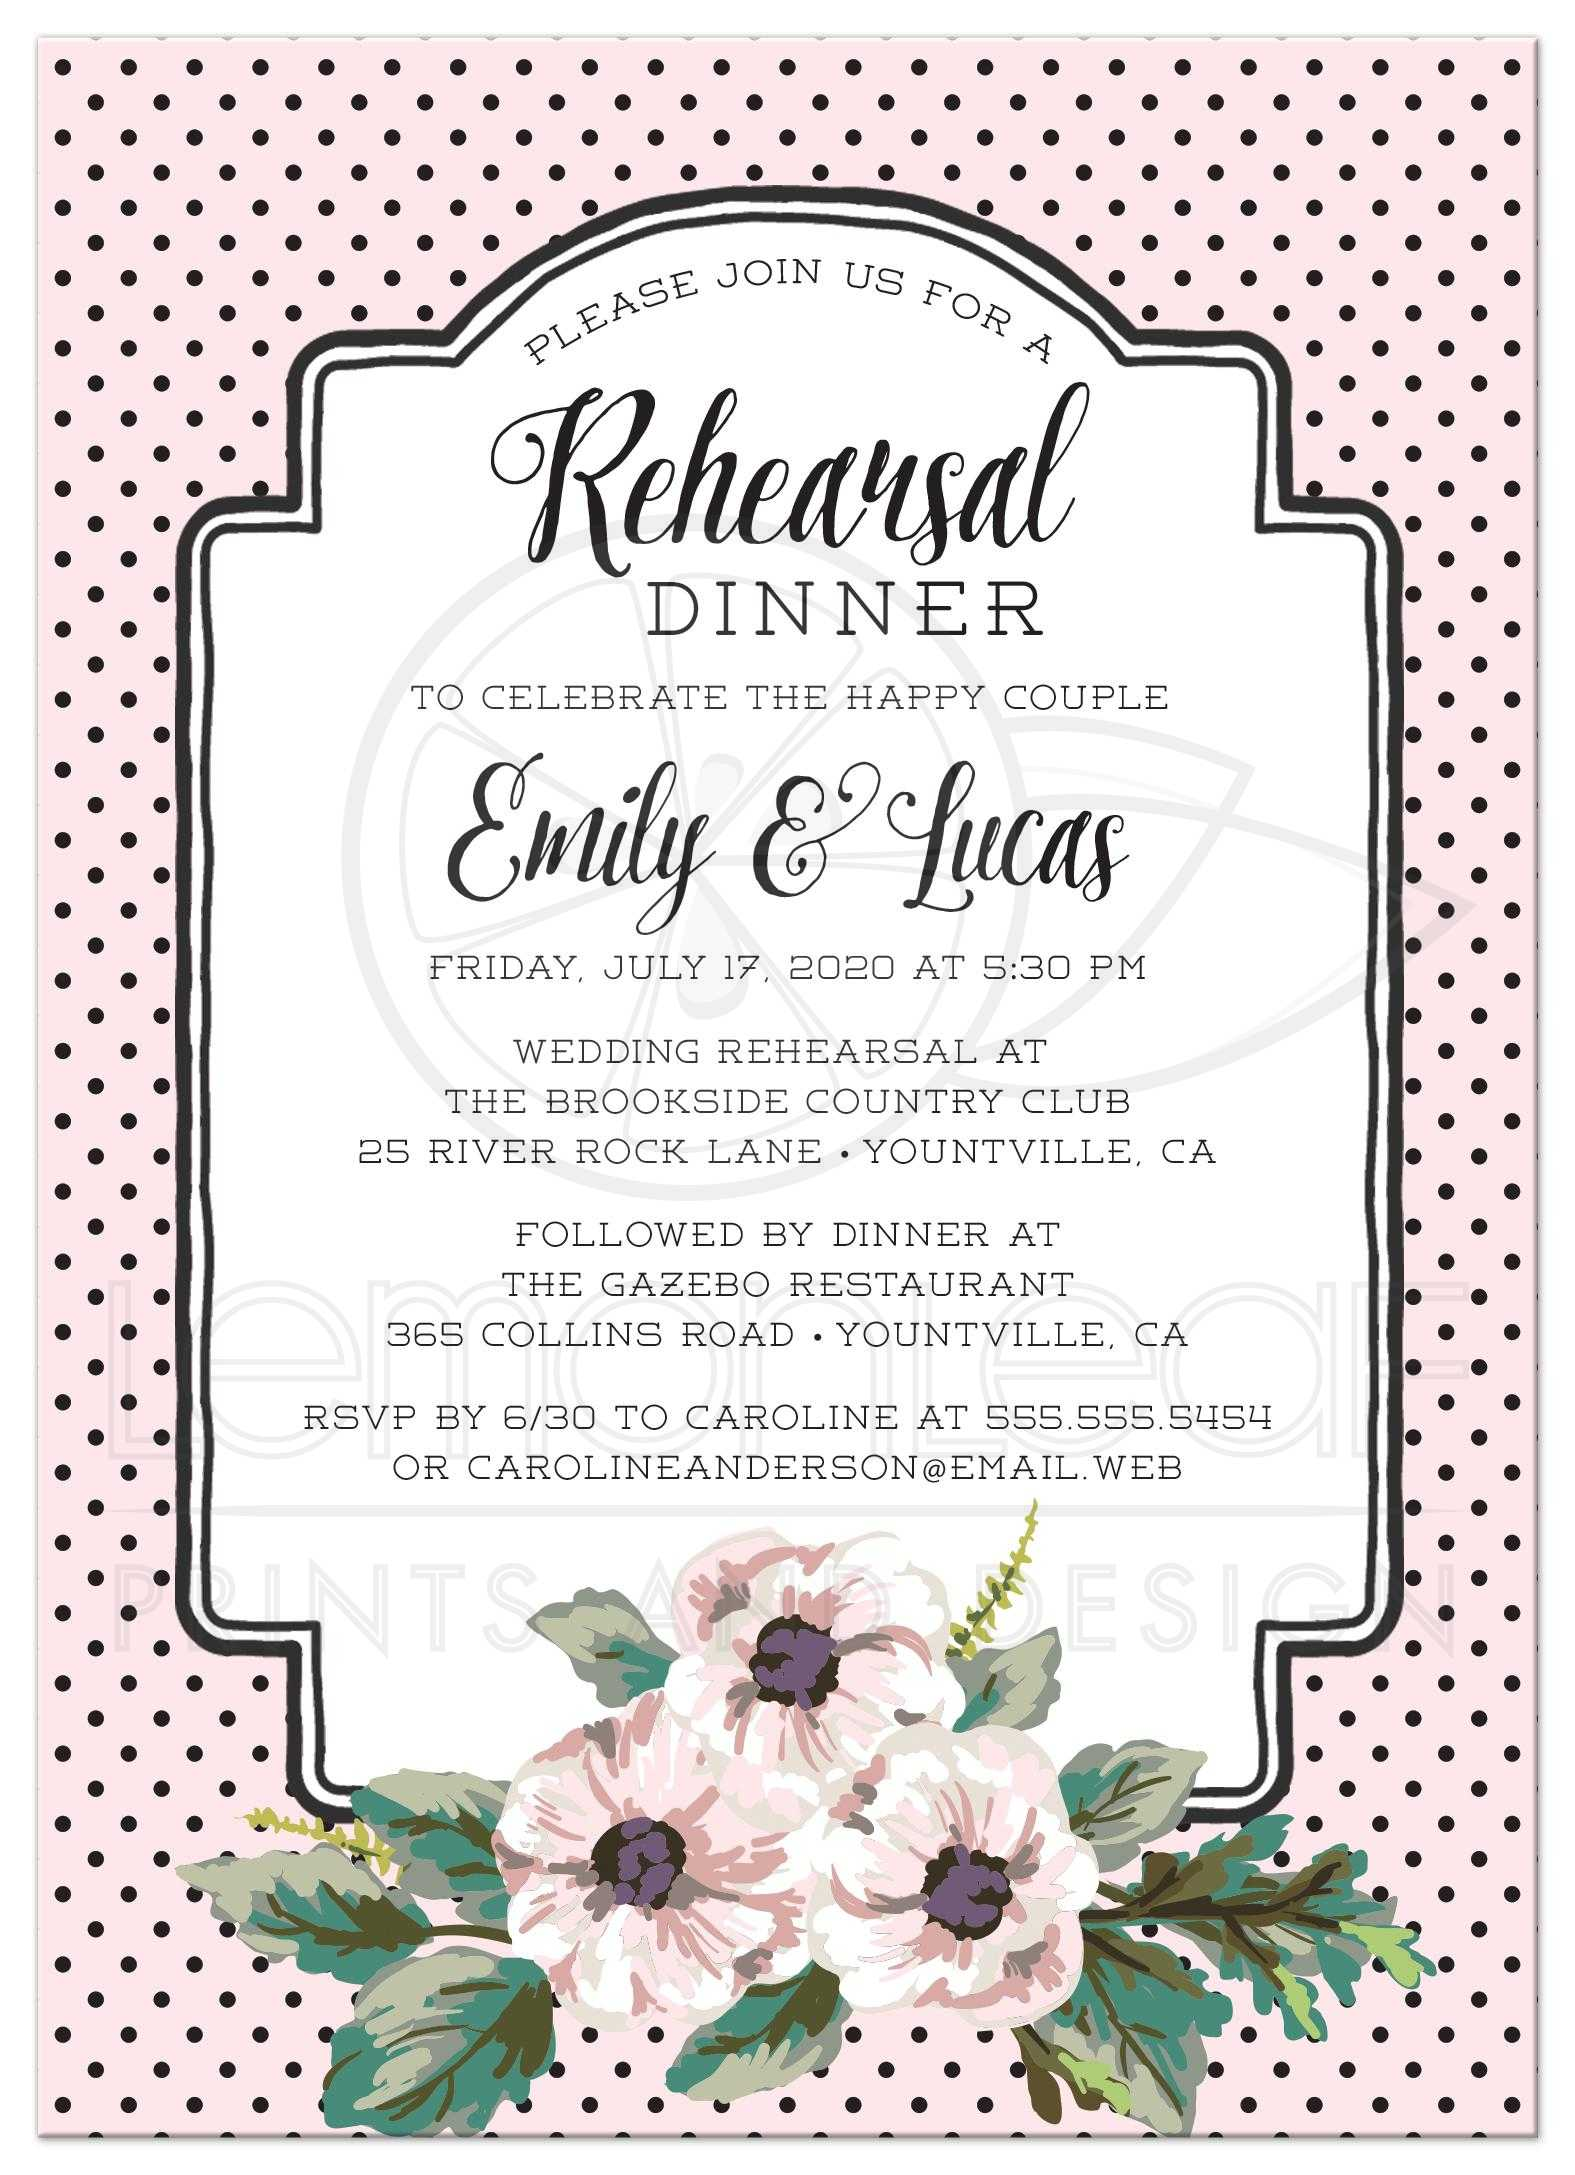 Wedding Rehearsal Dinner Invitations - Retro Polka Dots & Flowers